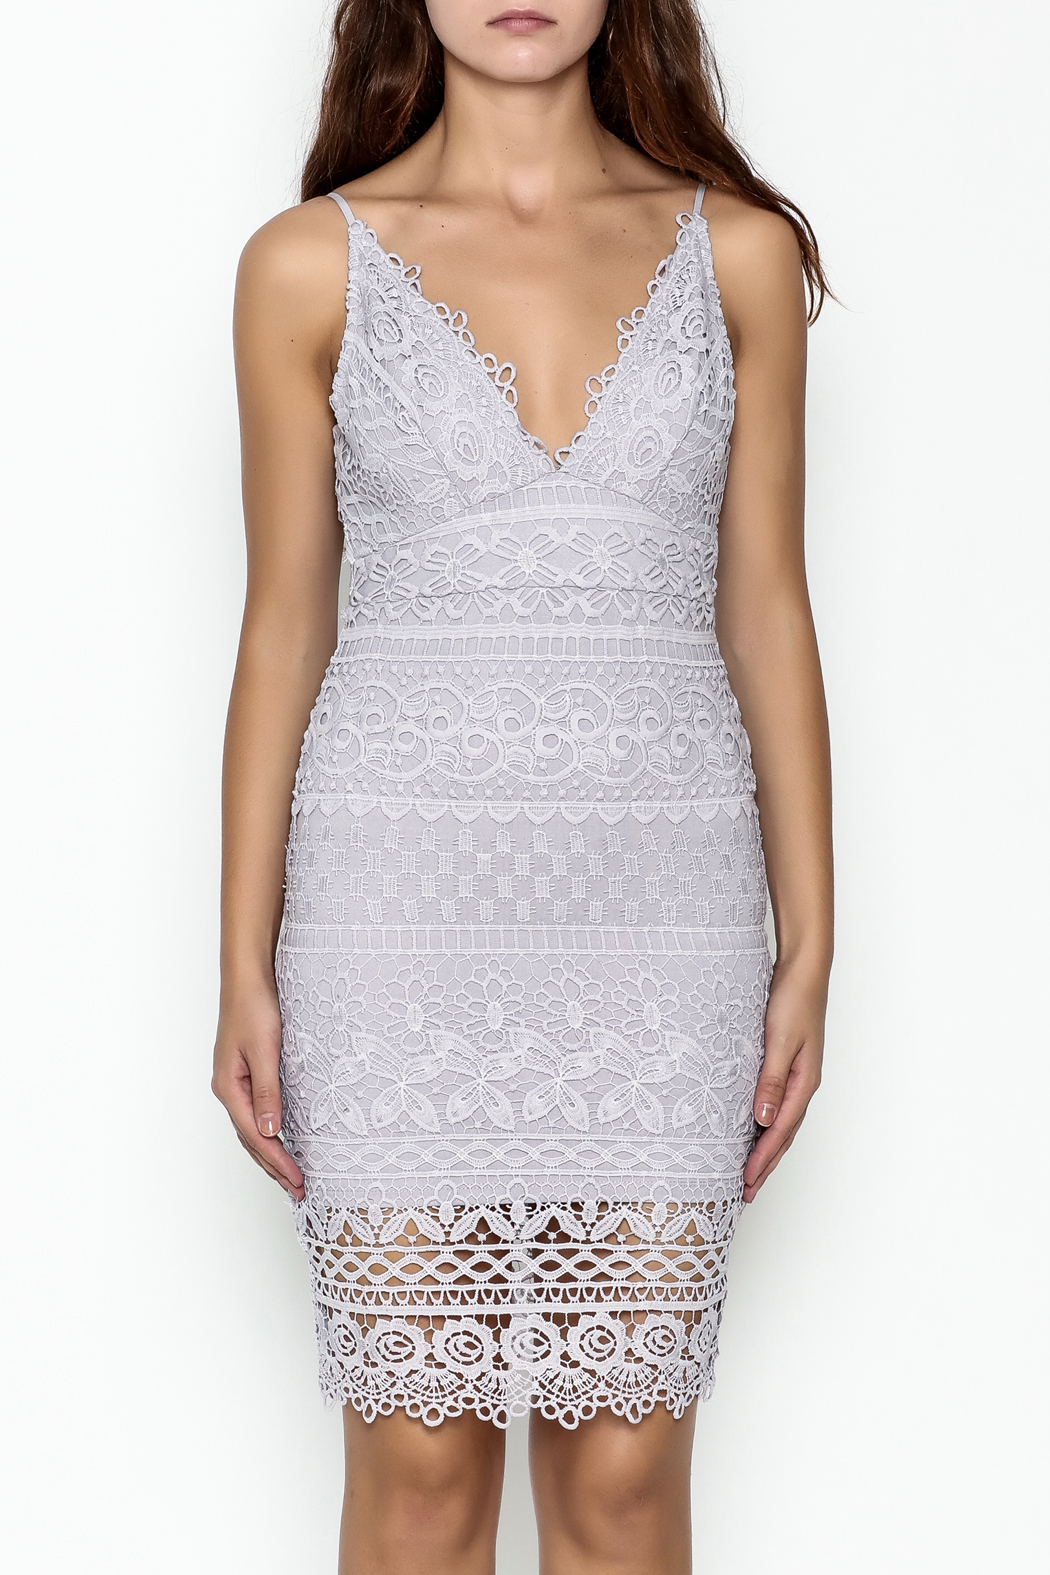 Ark & Co. Lace Dress - Front Full Image